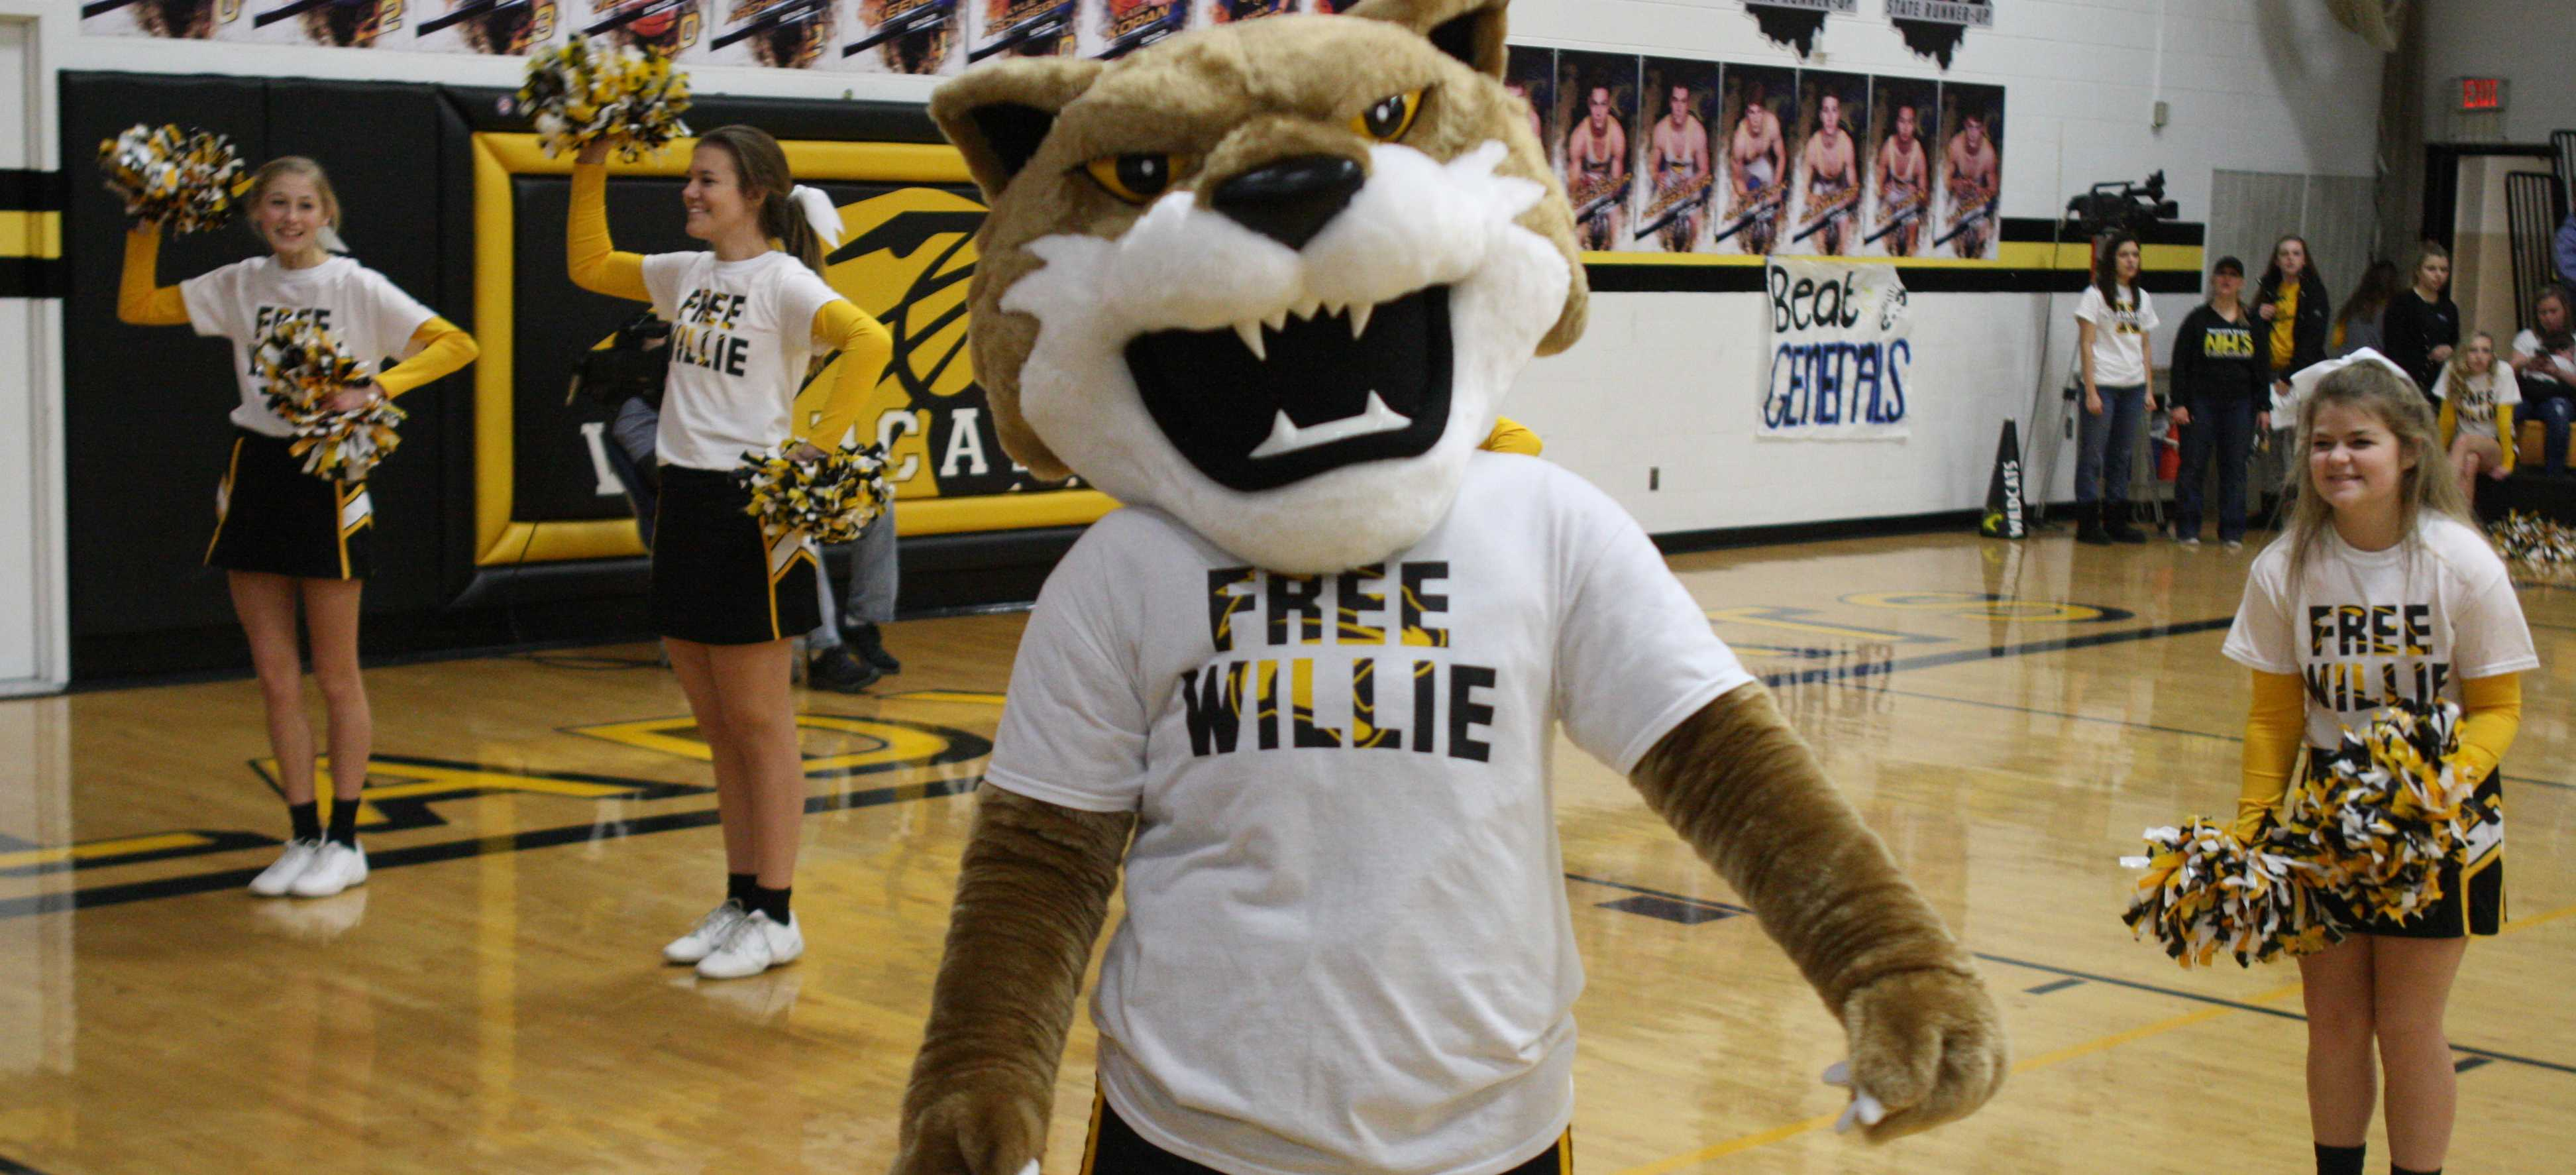 Welcome to the new Willy the Wildcat!